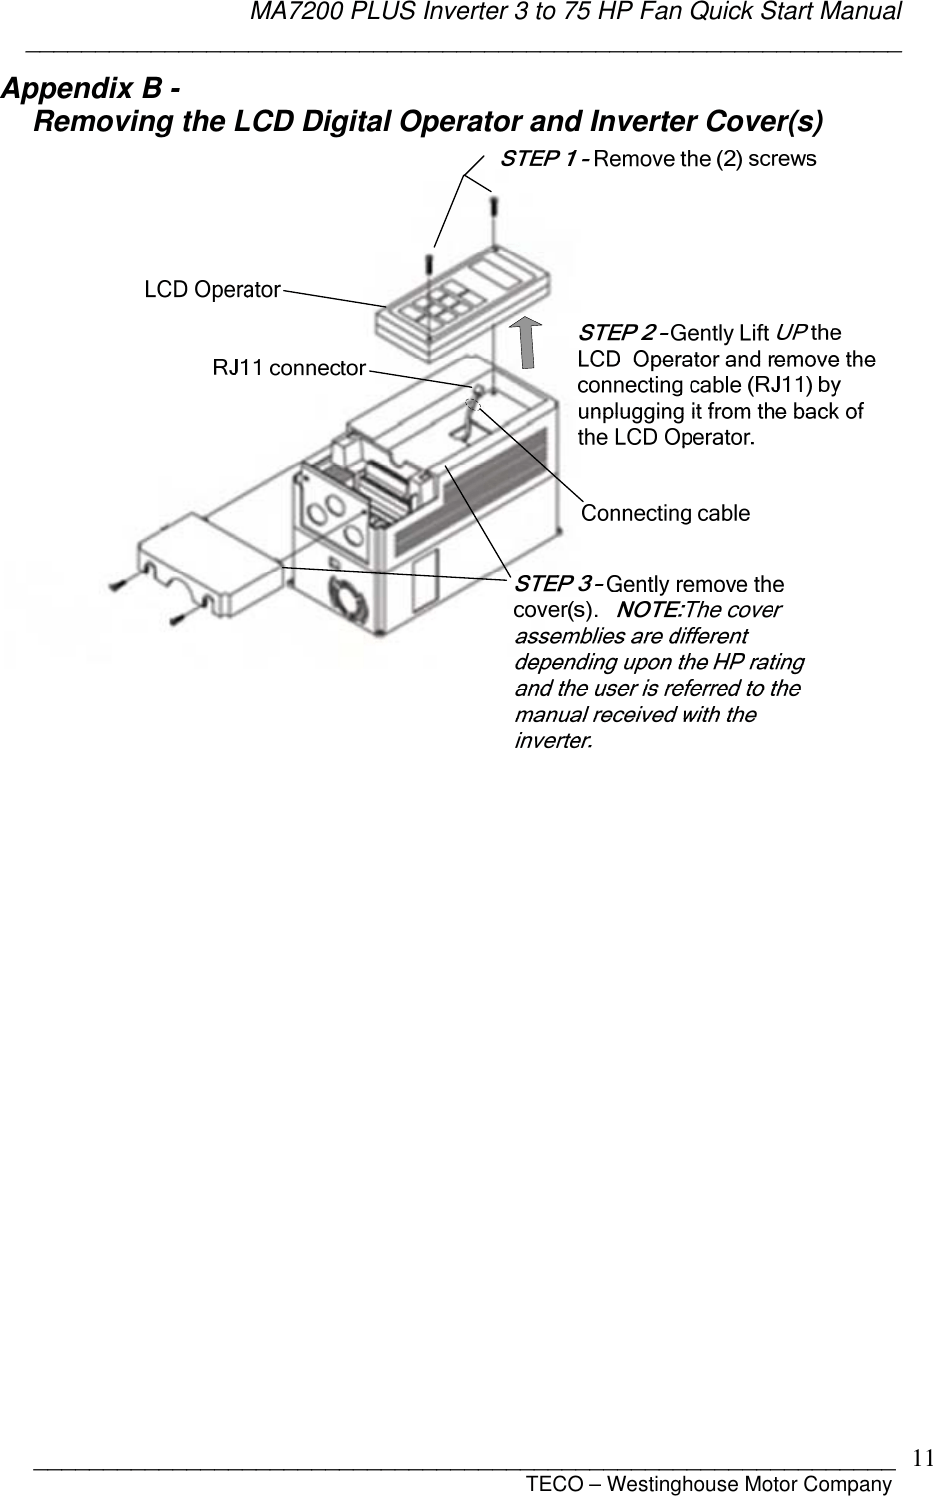 hight resolution of page 11 of 12 westinghouse westinghouse thru ma7200 4075 n1